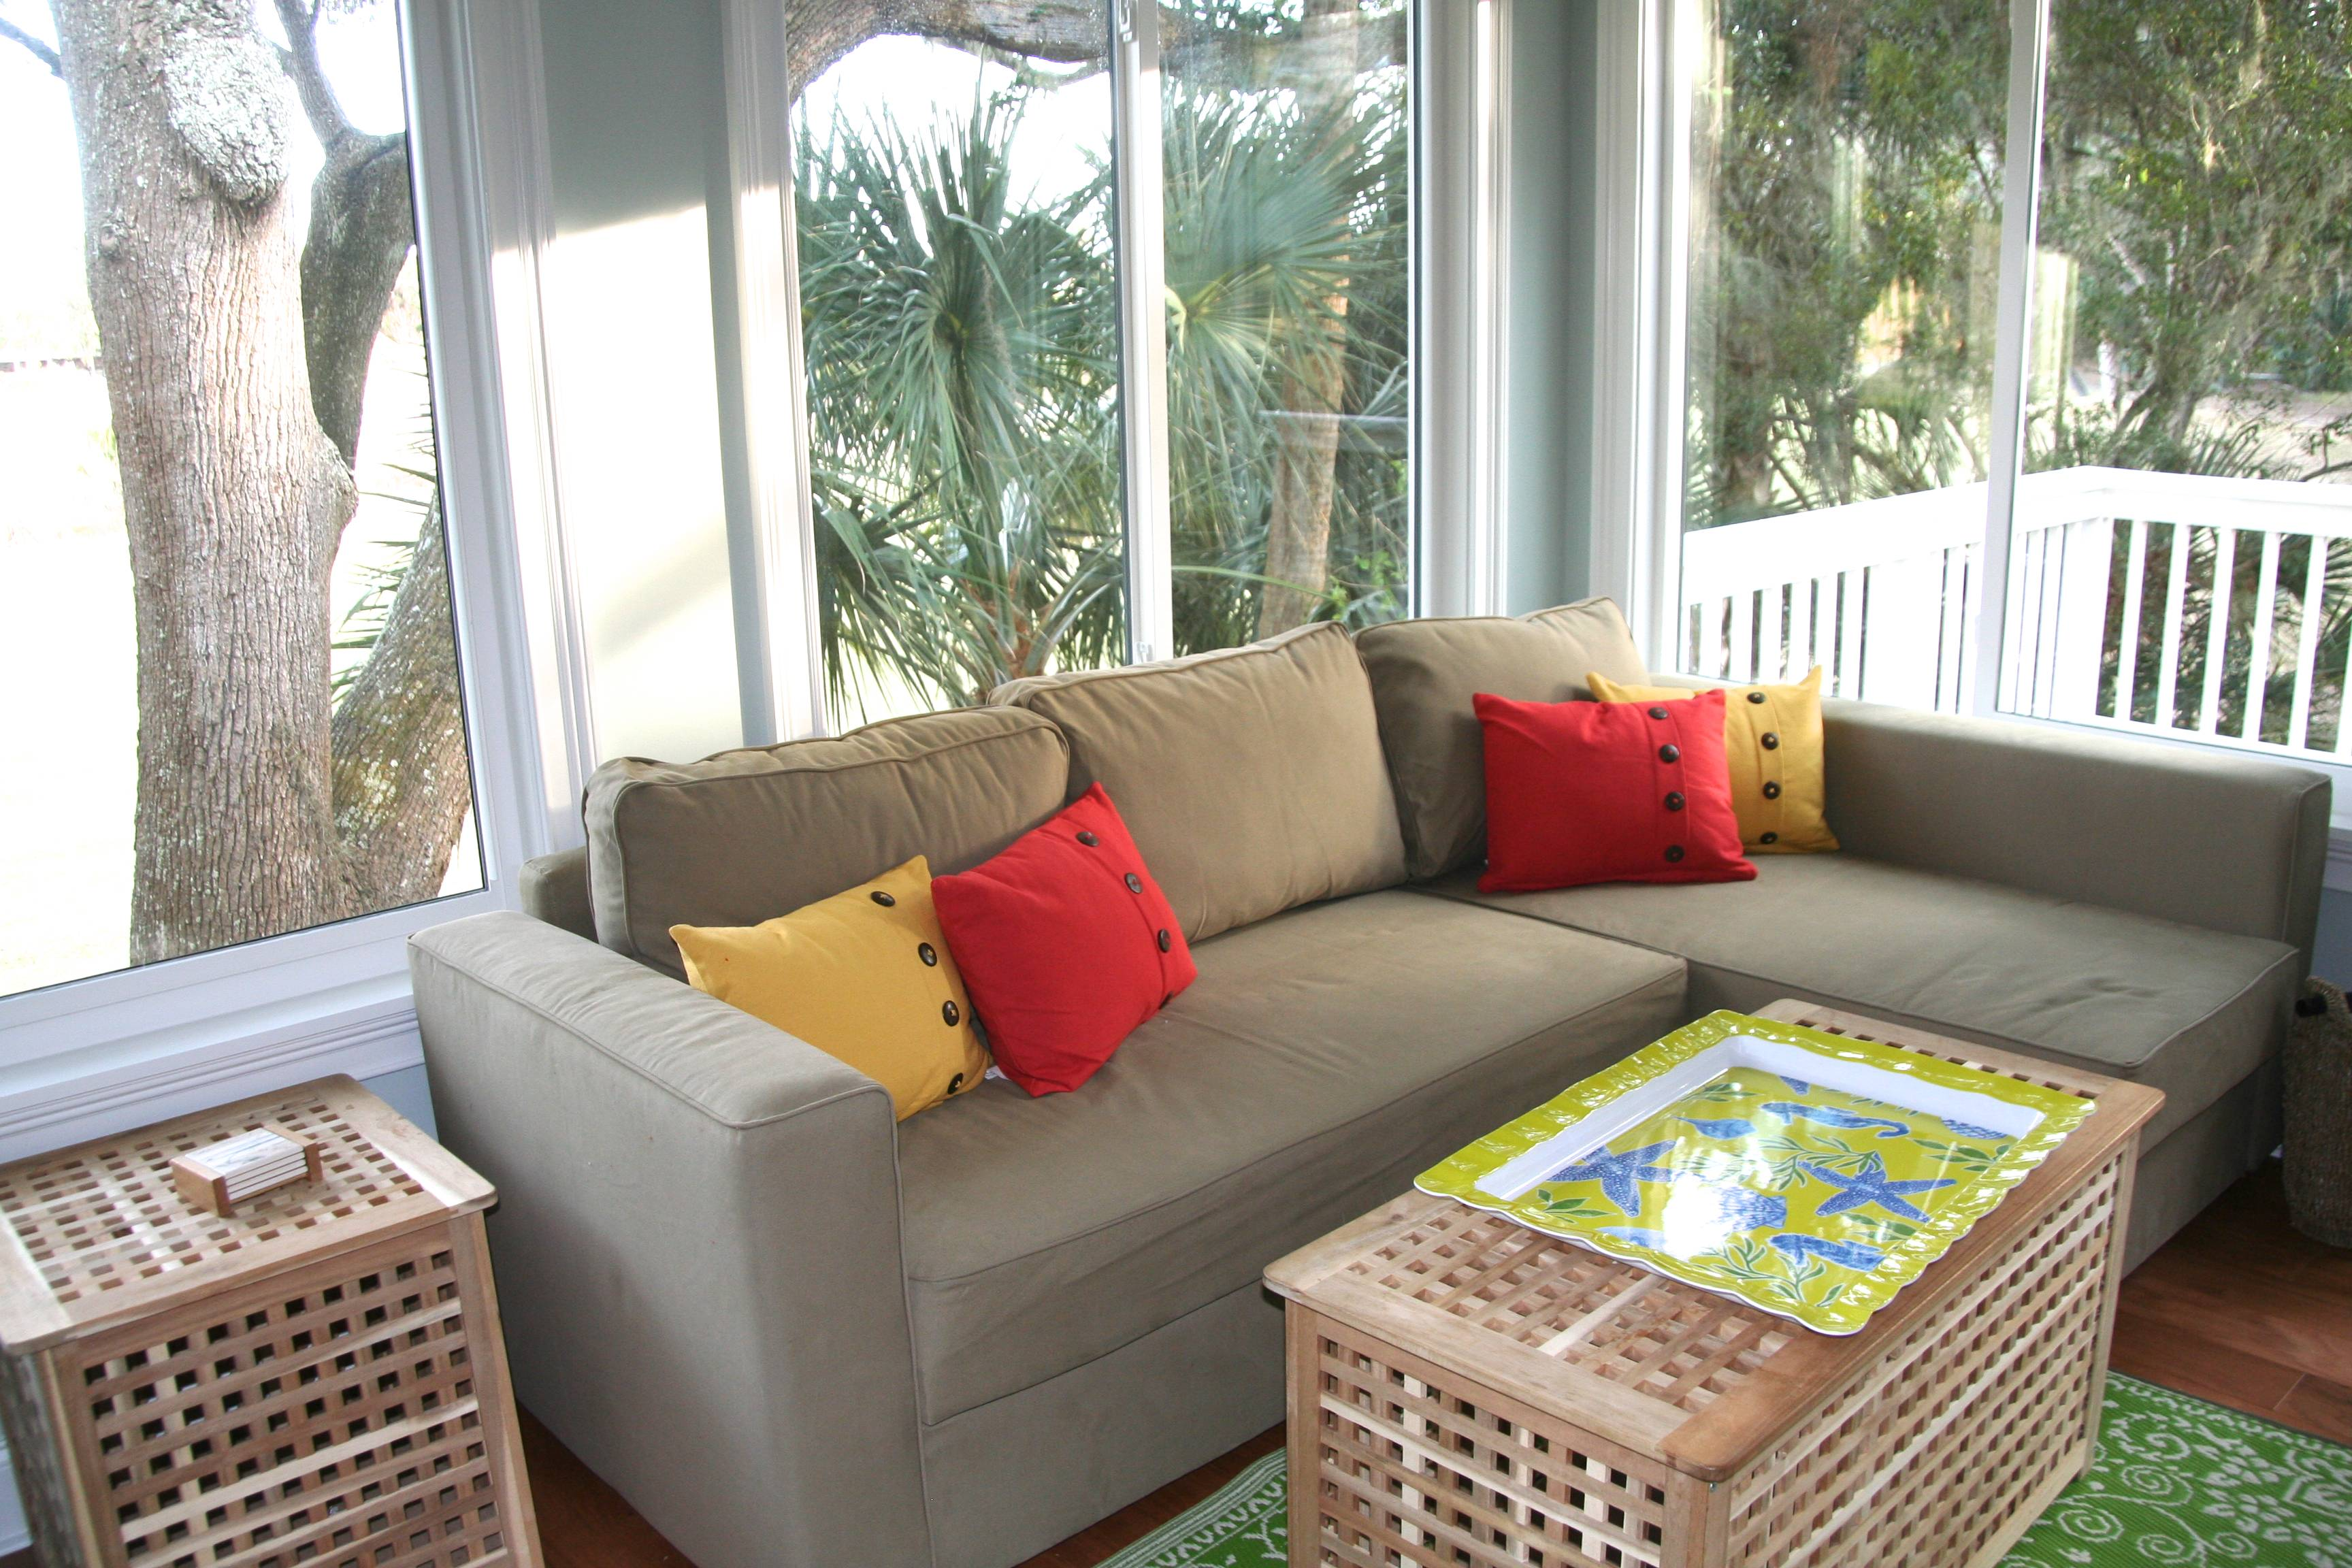 The sun room is a fabulous space to retreat with a good book or conversation.